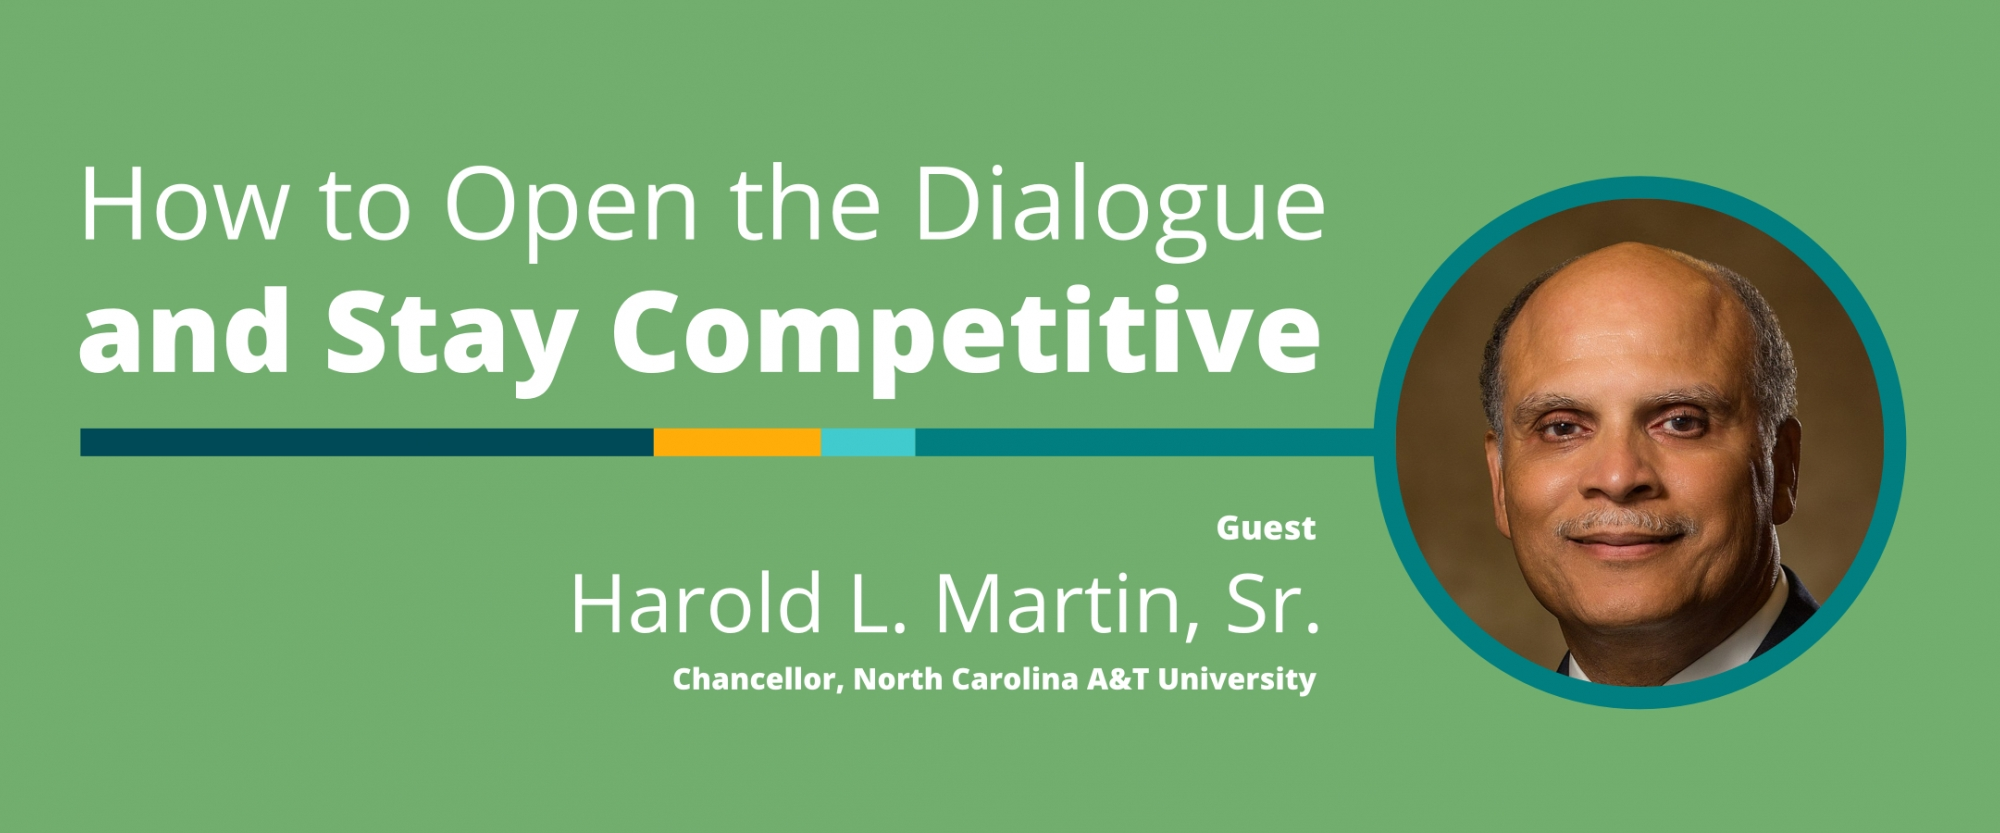 How to Open the Dialogue and Stay Competitive: A Conversation With Harold L. Martin, Sr., North Carolina A&T University Chancellor